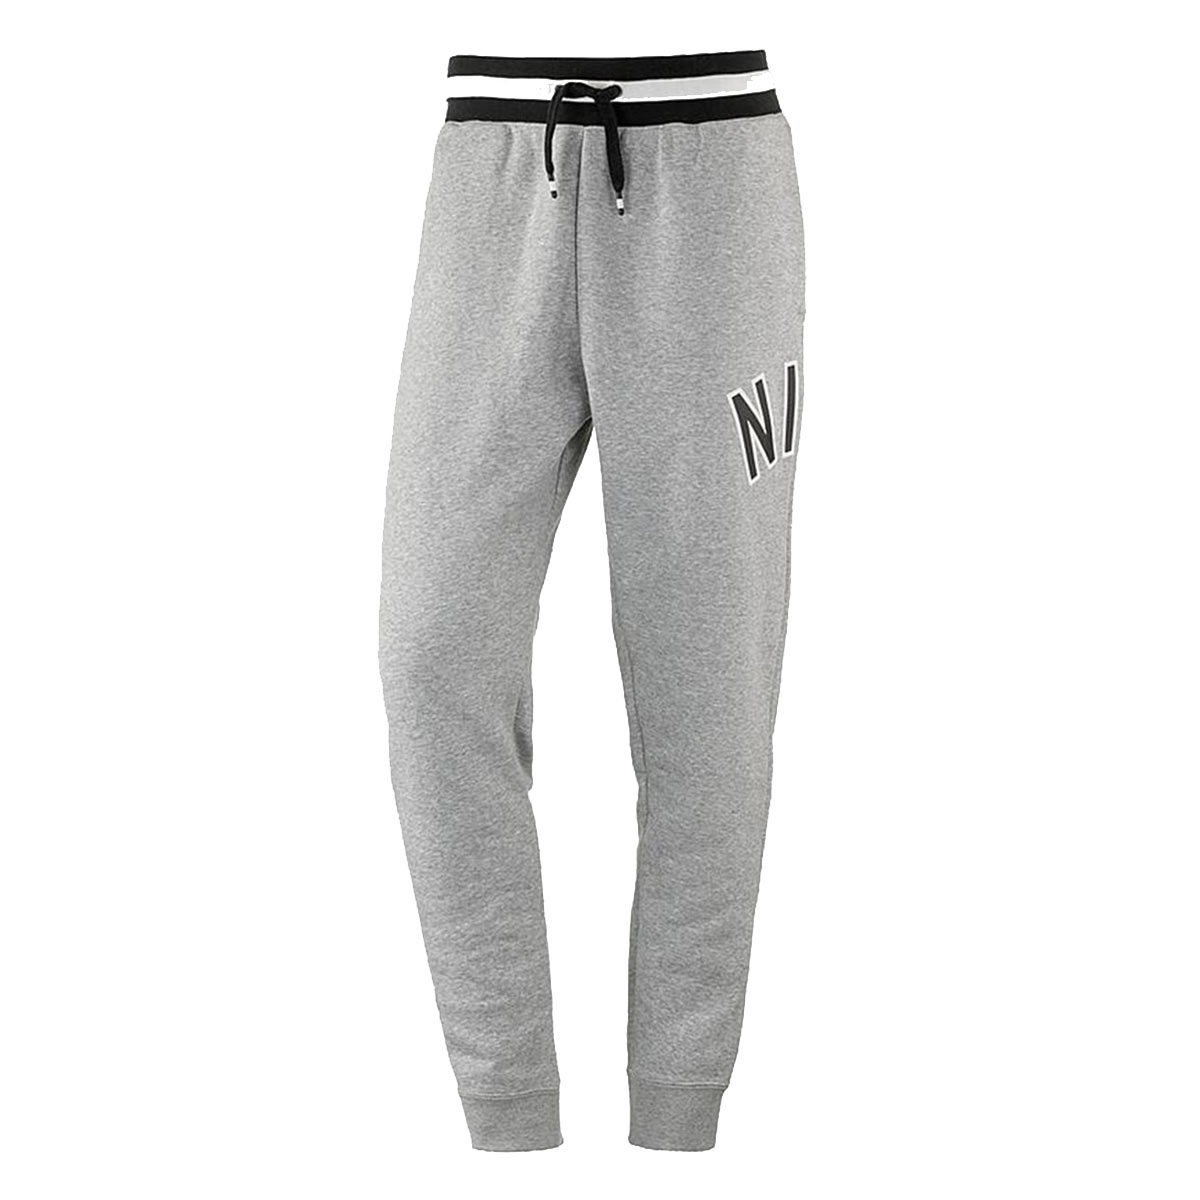 Nike Air Max Pant Grey-White-Black